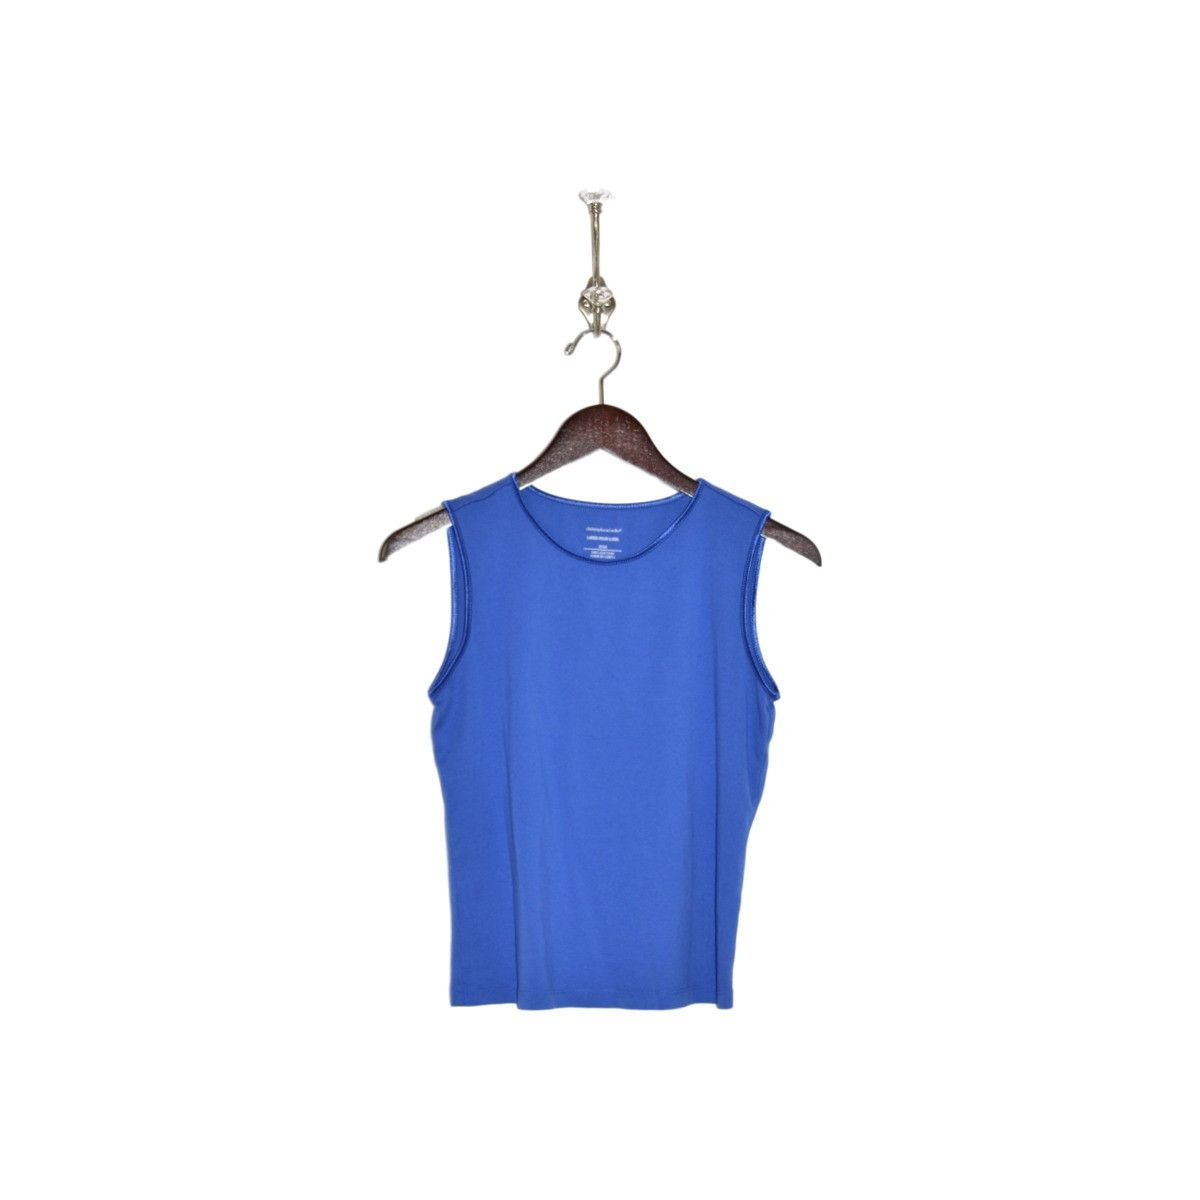 Christopher Banks Blue Tank Top